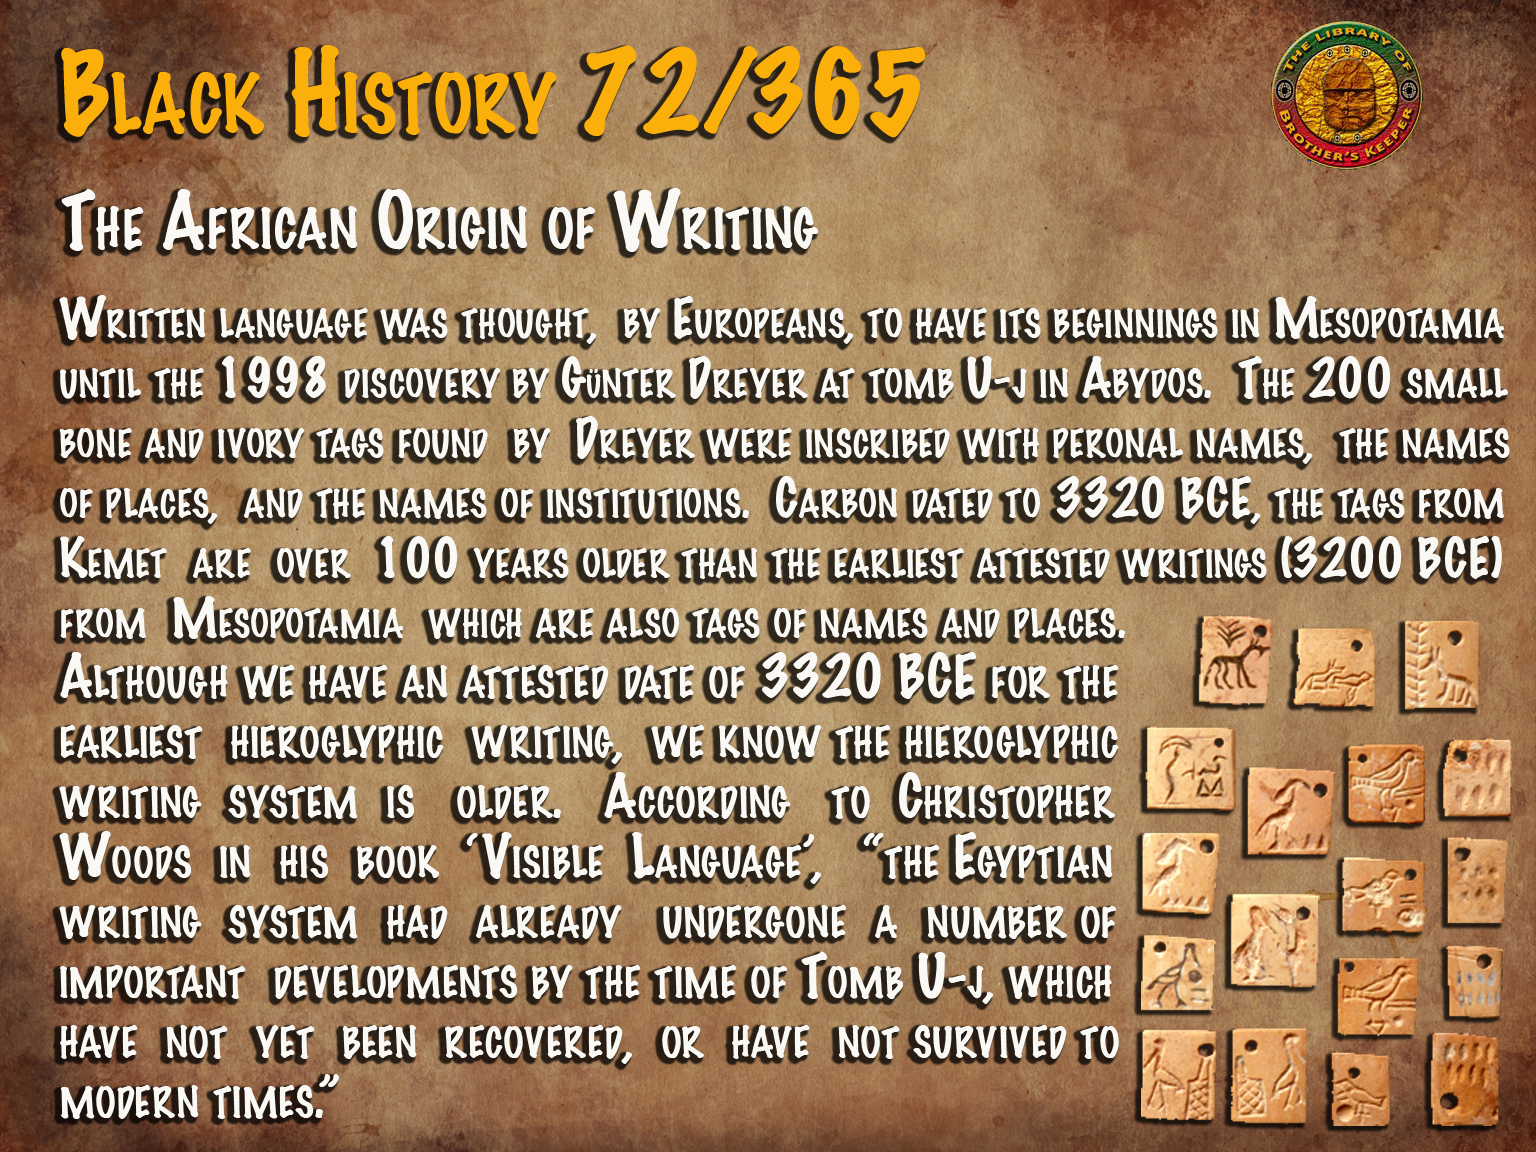 The African Origin of Writing